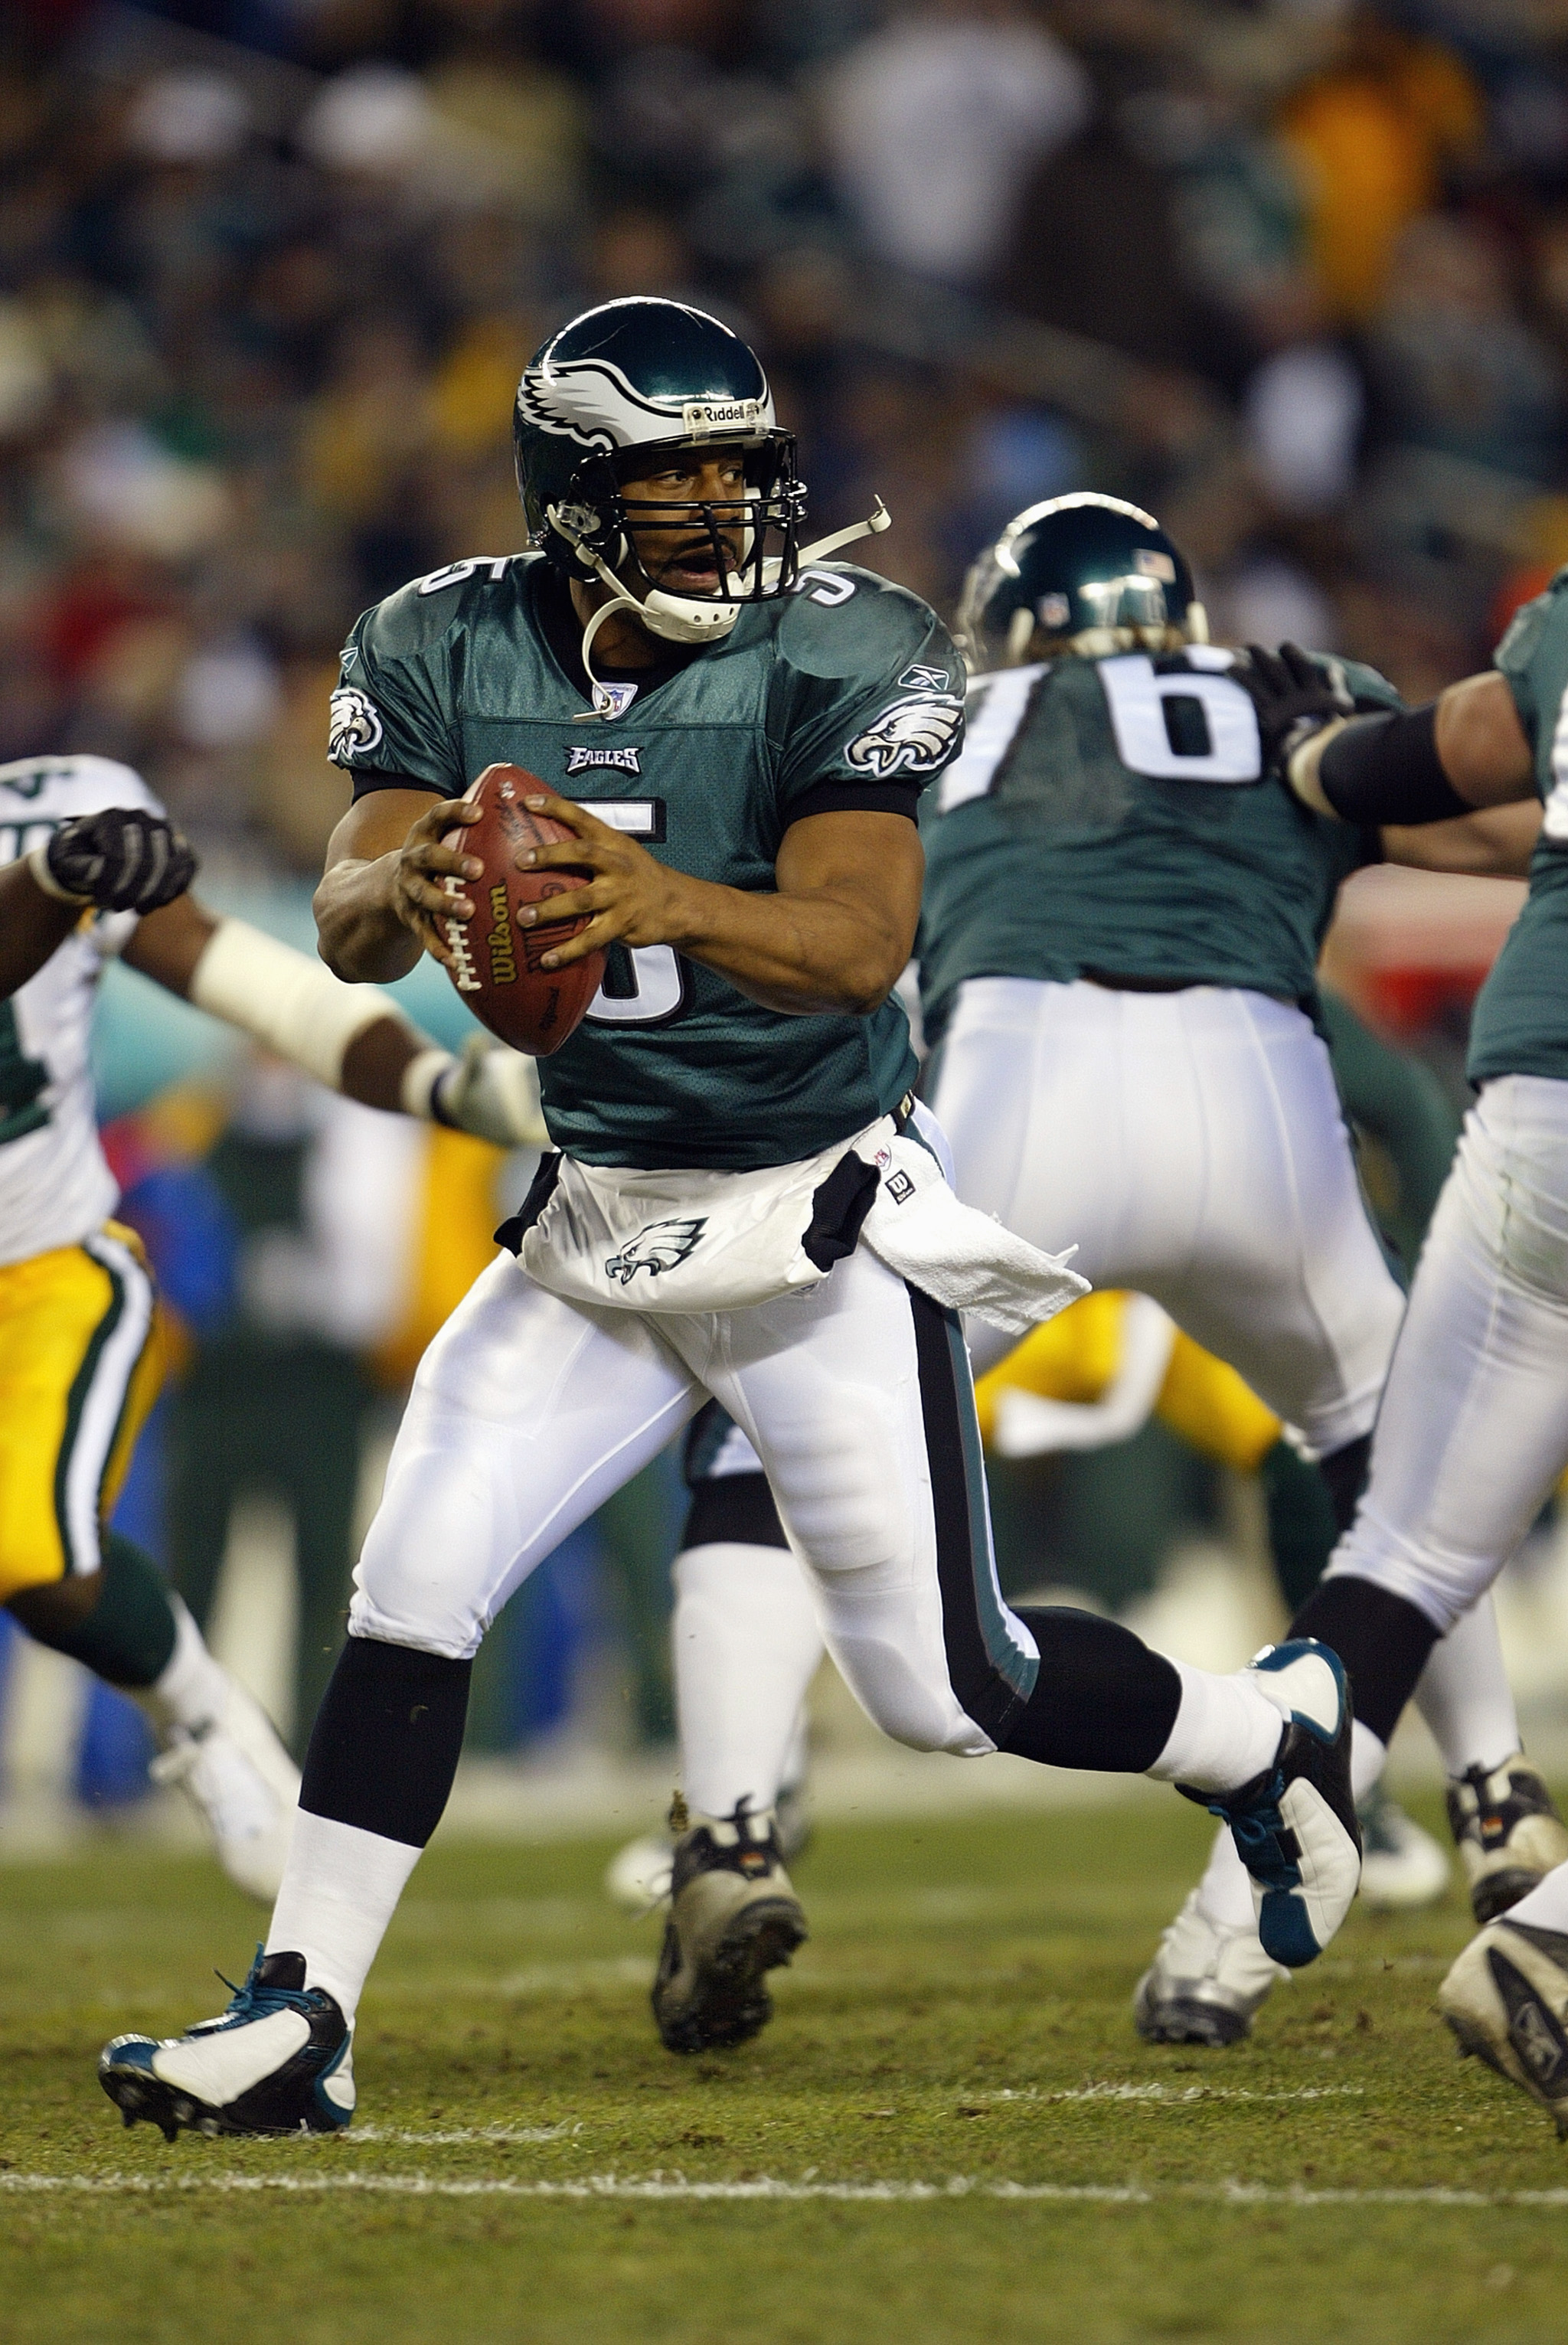 PHILADELPHIA - JANUARY 11:  Quarterback Donovan McNabb #5 of the Philadelphia Eagles drops back to pass during the game against the Green Bay Packers in the NFC divisional playoffs on January 11, 2004 at Lincoln Financial Field in Philadelphia, Pennsylvan